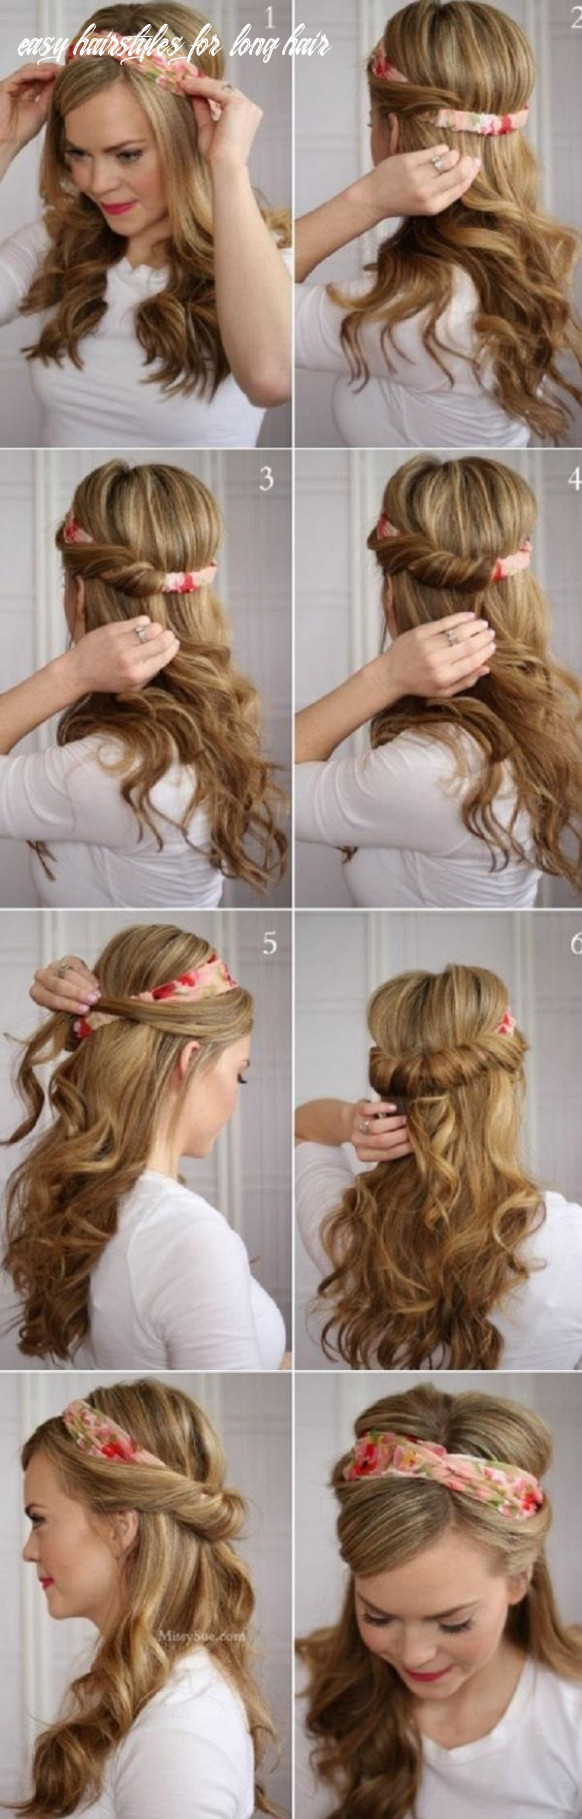 11 Easy Hairstyles for long hair   Cuded